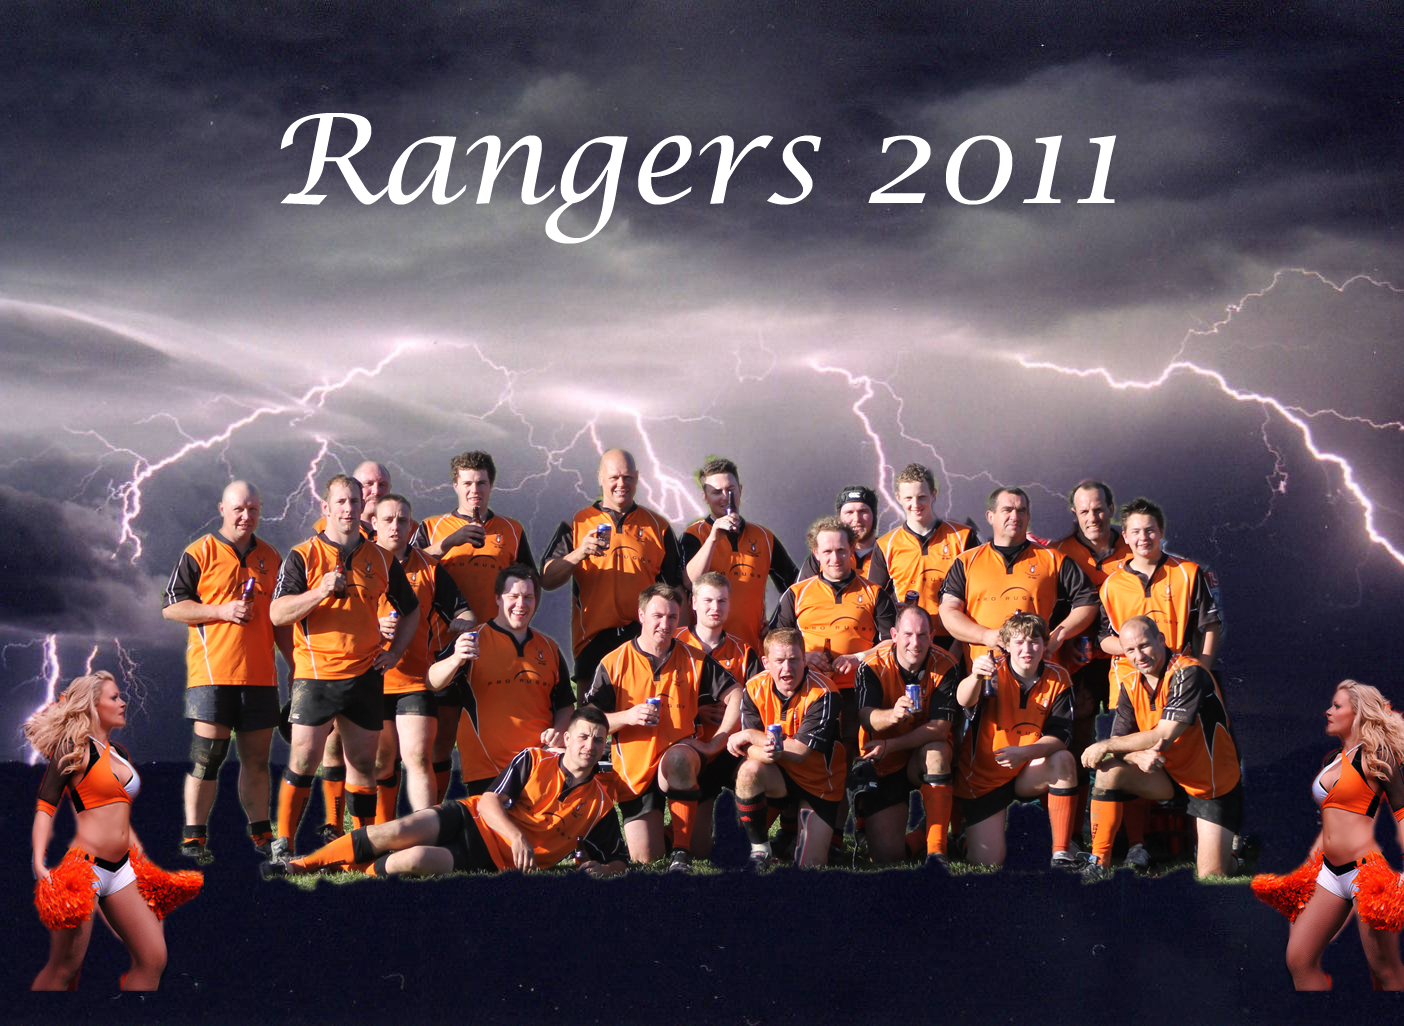 2011 rangers rugby